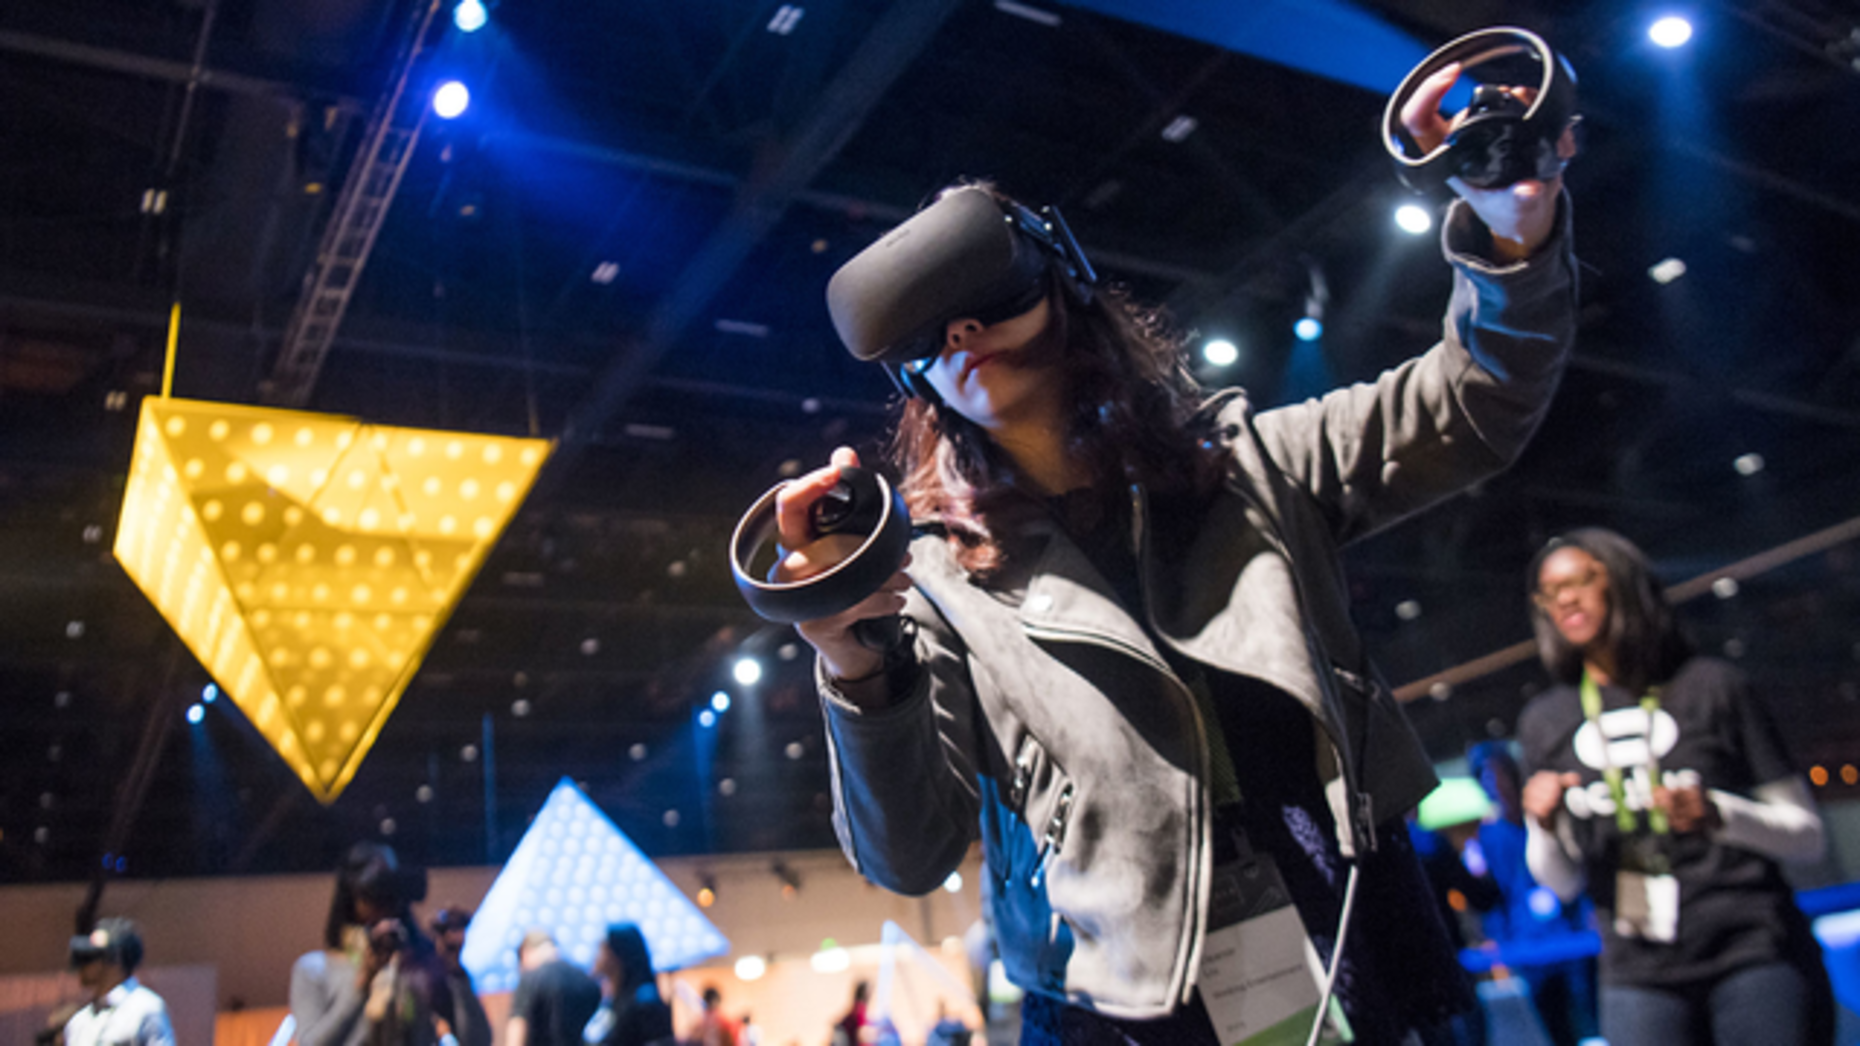 An attendee using the Oculus Rift VR headset at an event last October. Photo by Bloomberg.